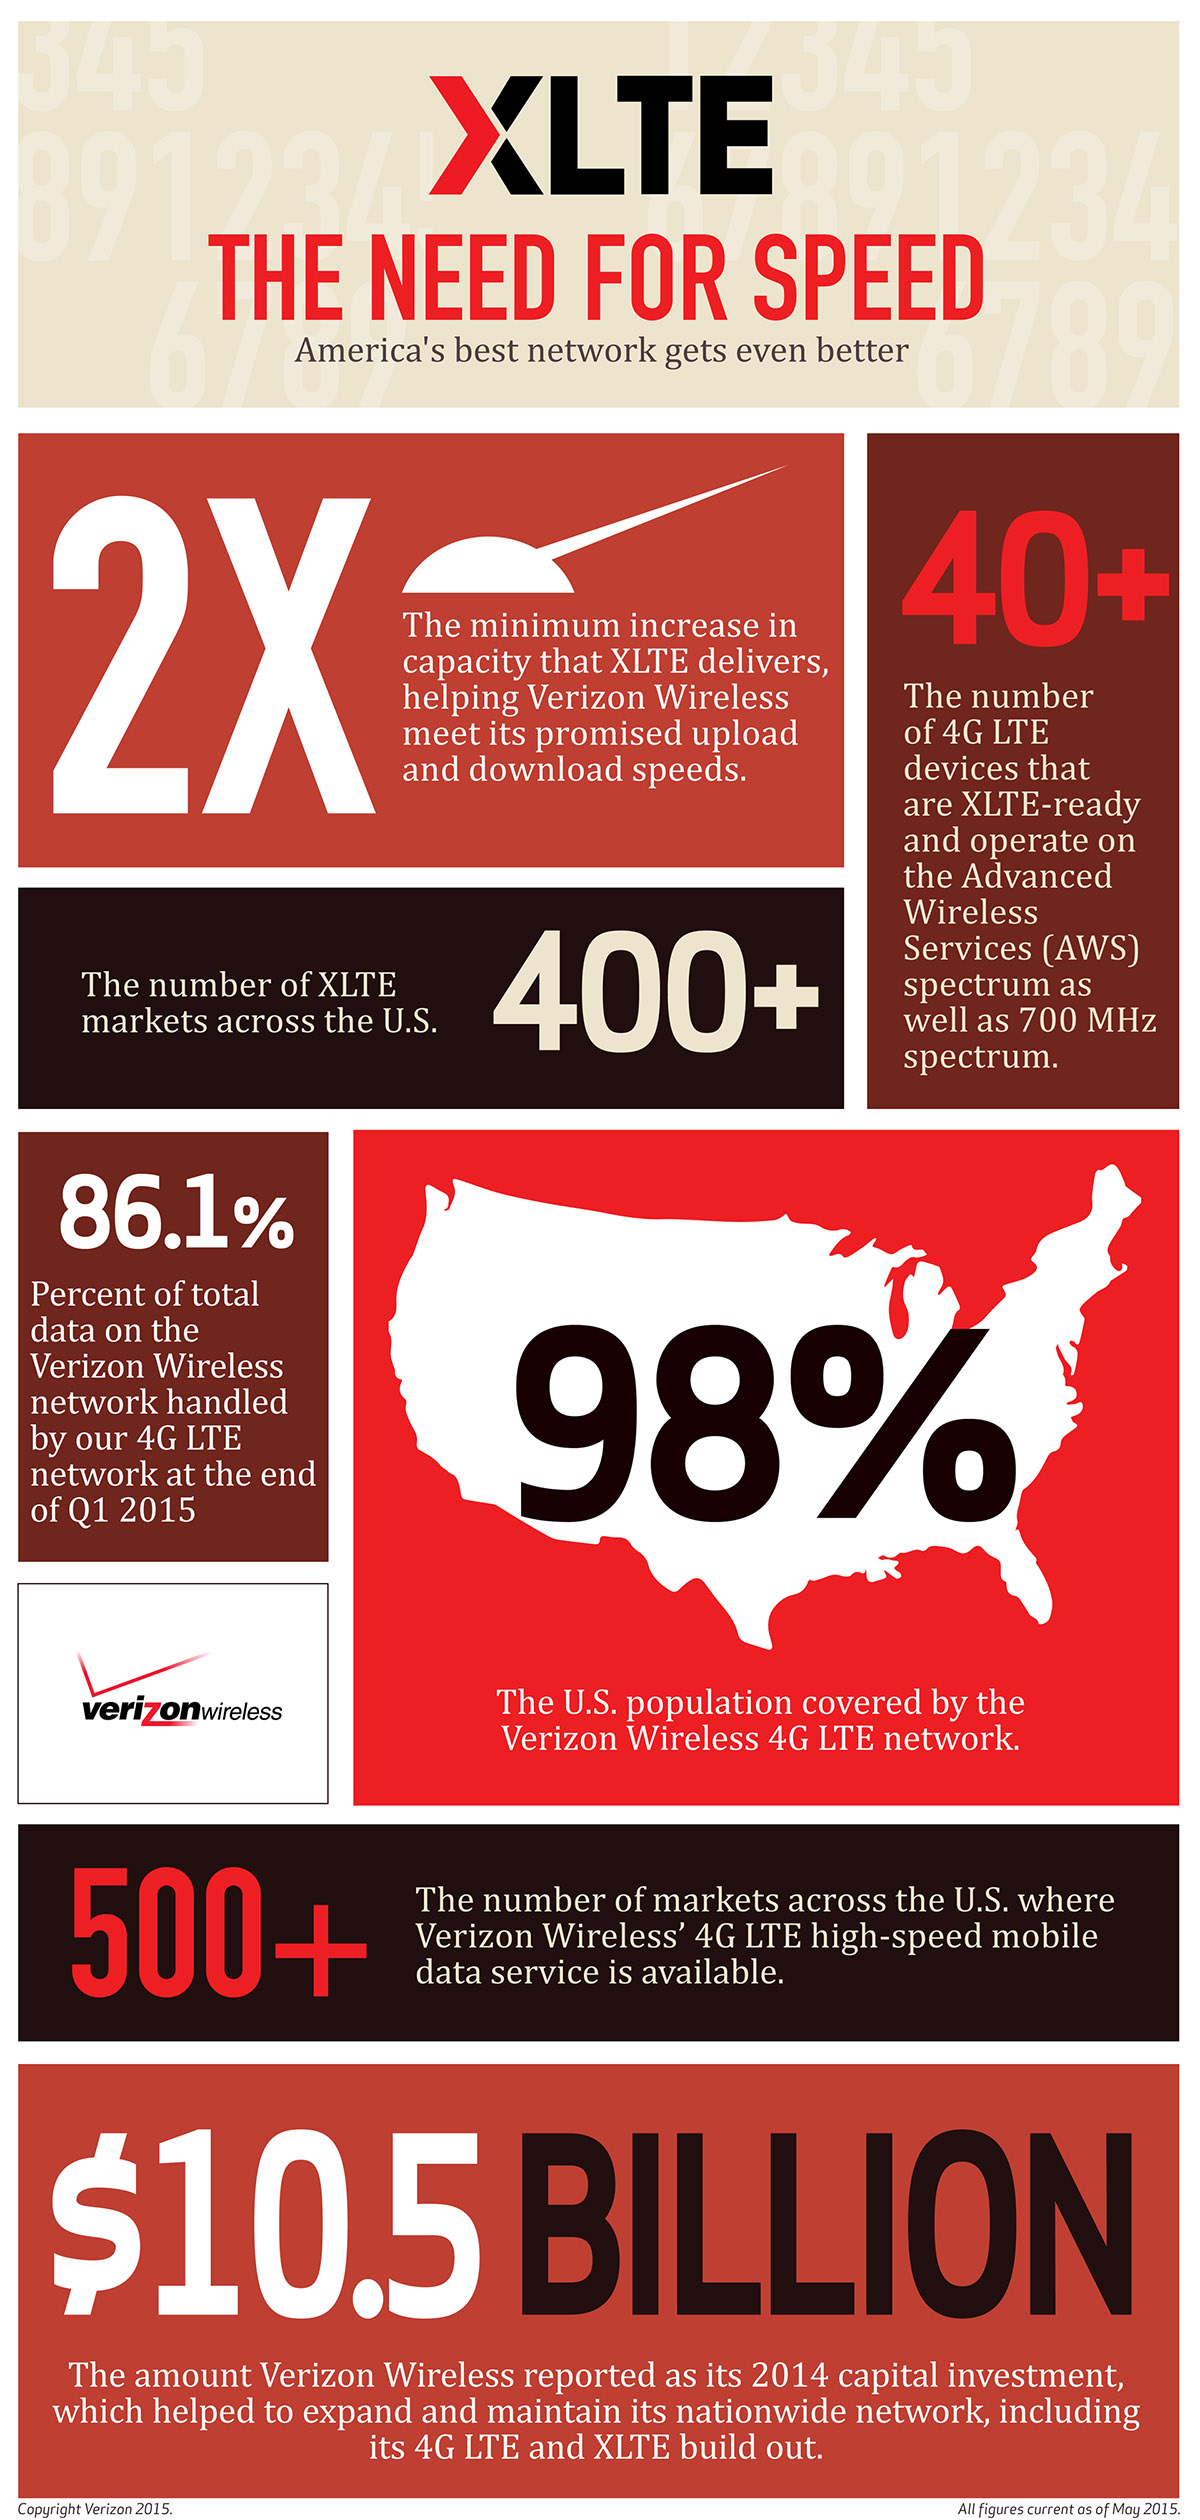 xlte-infographic-2014-05-19